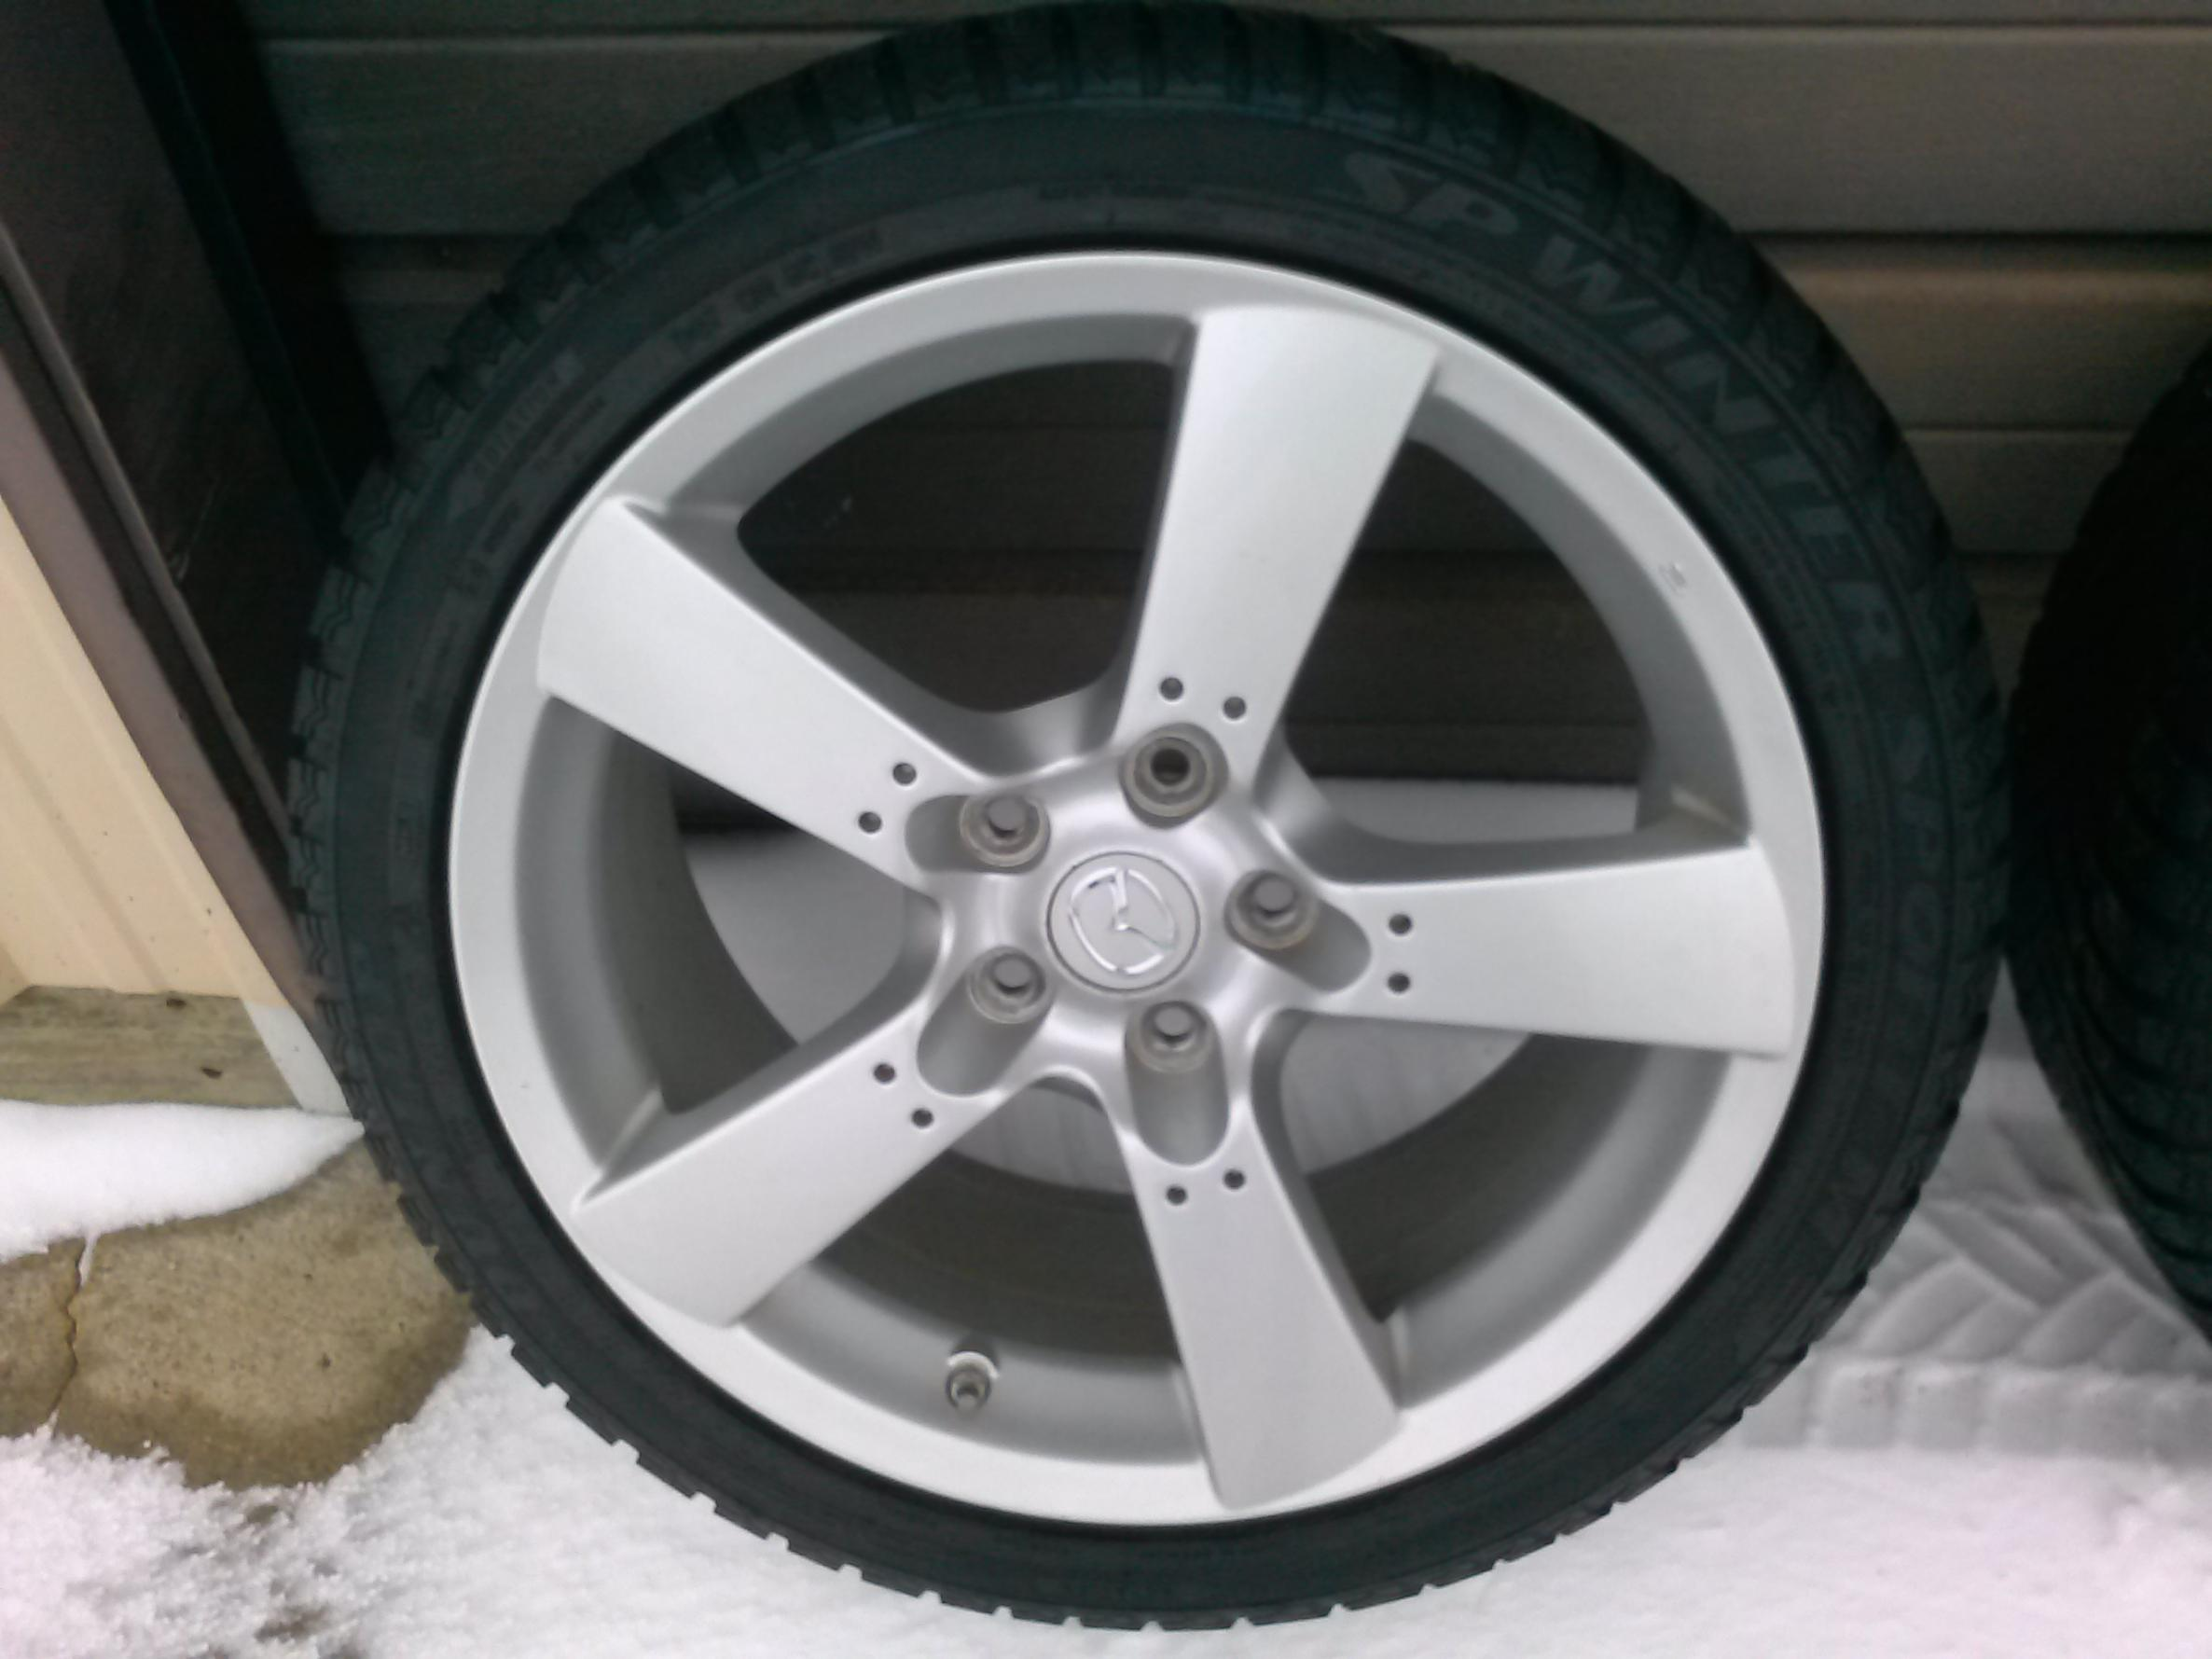 FS Stock RX8 Wheels WTMPS Amp Snow Tires